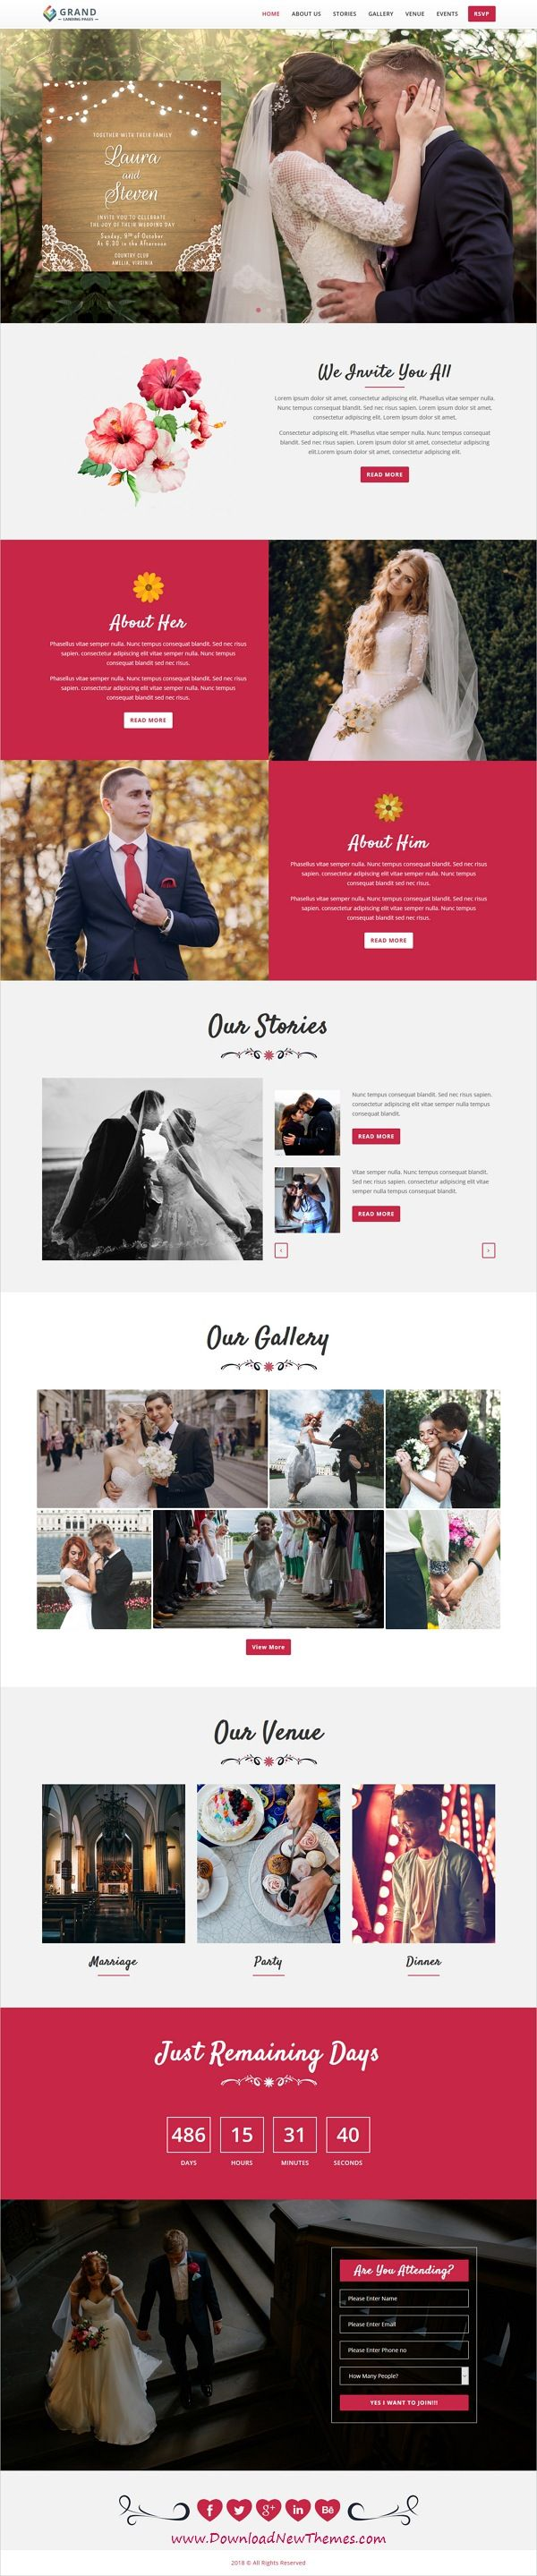 Grand is clean and modern design responsive multipurpose bootstrap HTML #template for #wedding invitations lead generating landing page website with 75+ niche homepage layouts to live preview & download click on image or Visit #marriage #couple #love